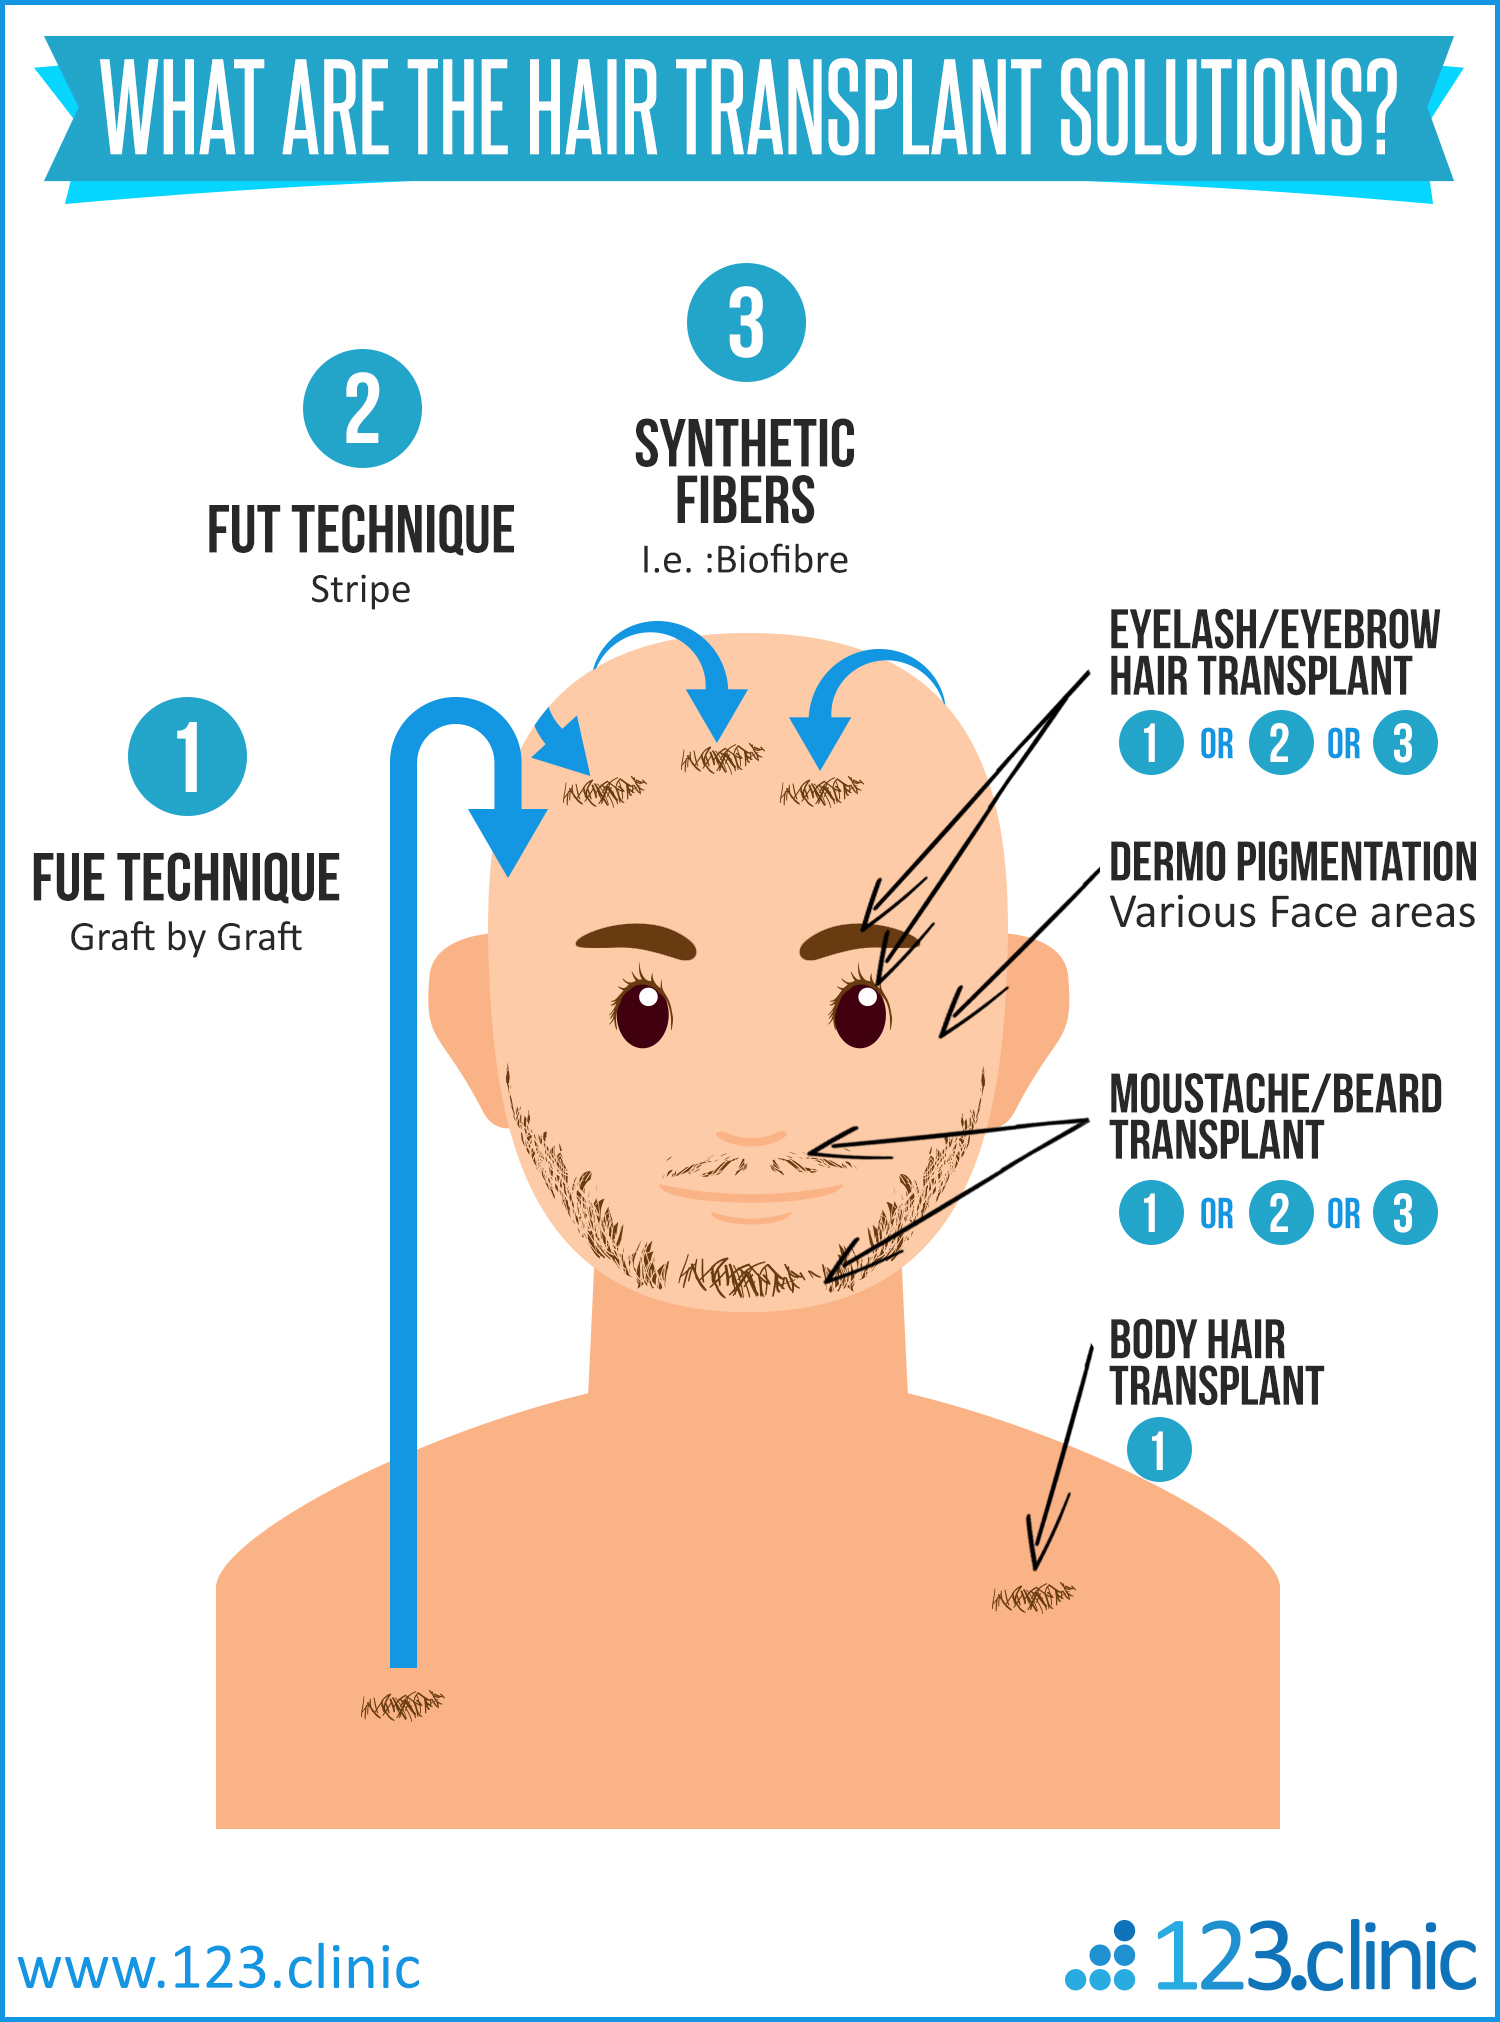 hair-transplant-1000-grafts-123.clinic